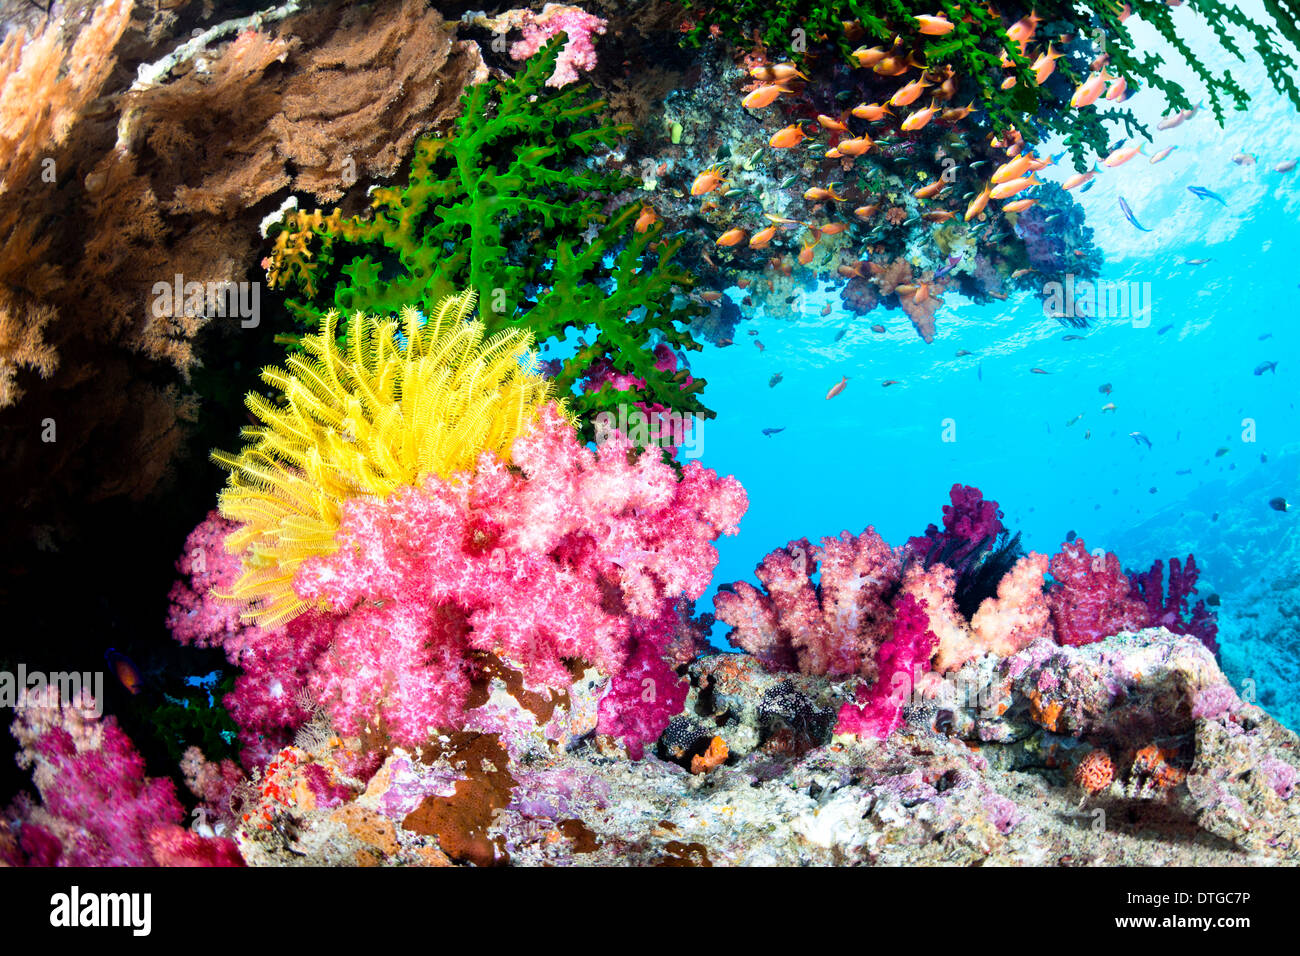 A beautiful, exotic tropical reef covered with vibrant soft and hard corals and a yellow crinoid in clear water. - Stock Image